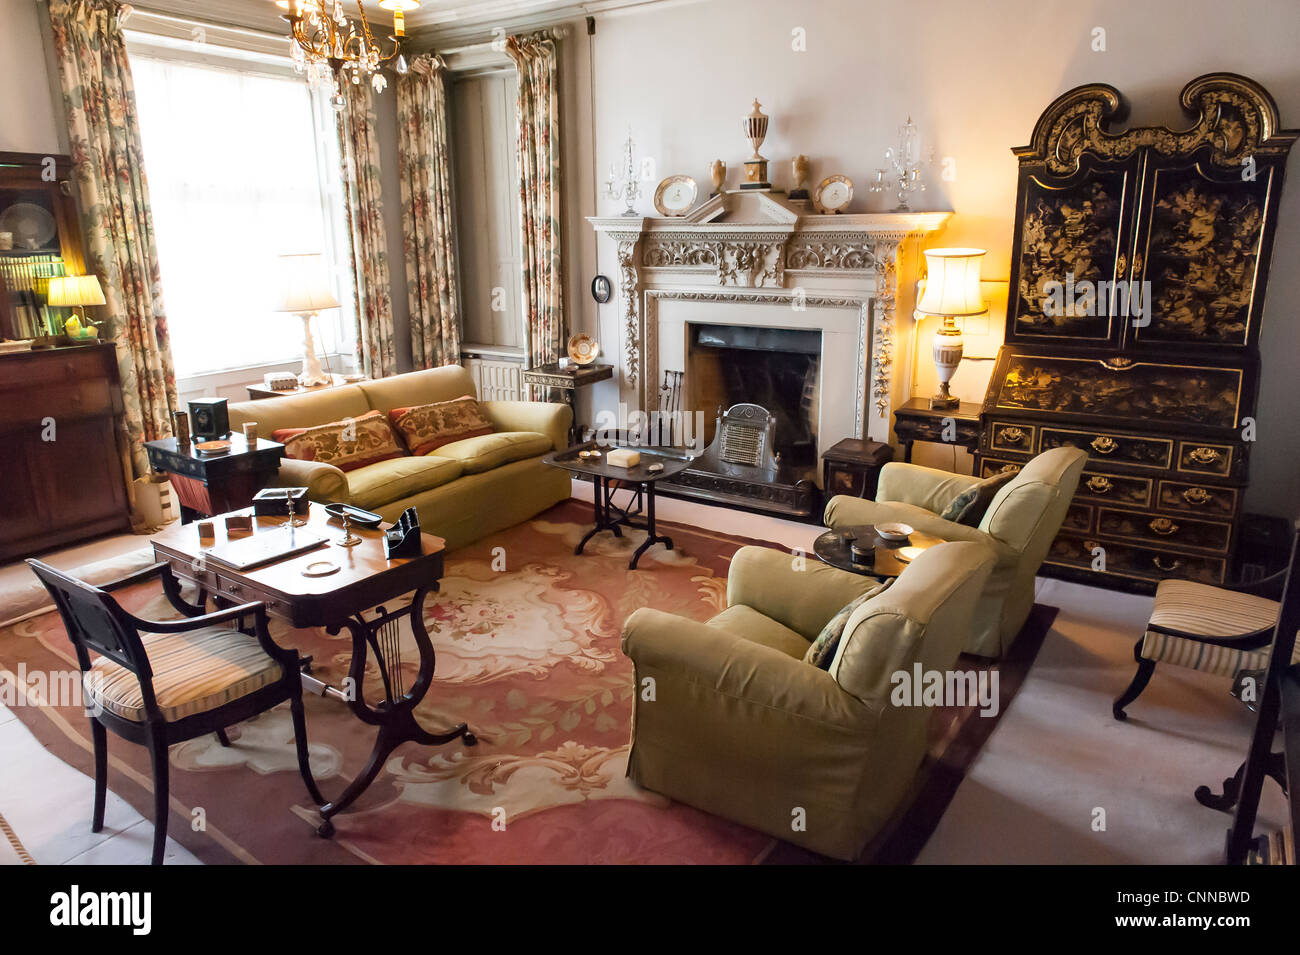 ... Living Room Interior Of An Victorian Style English Manor House   Stock  Photo